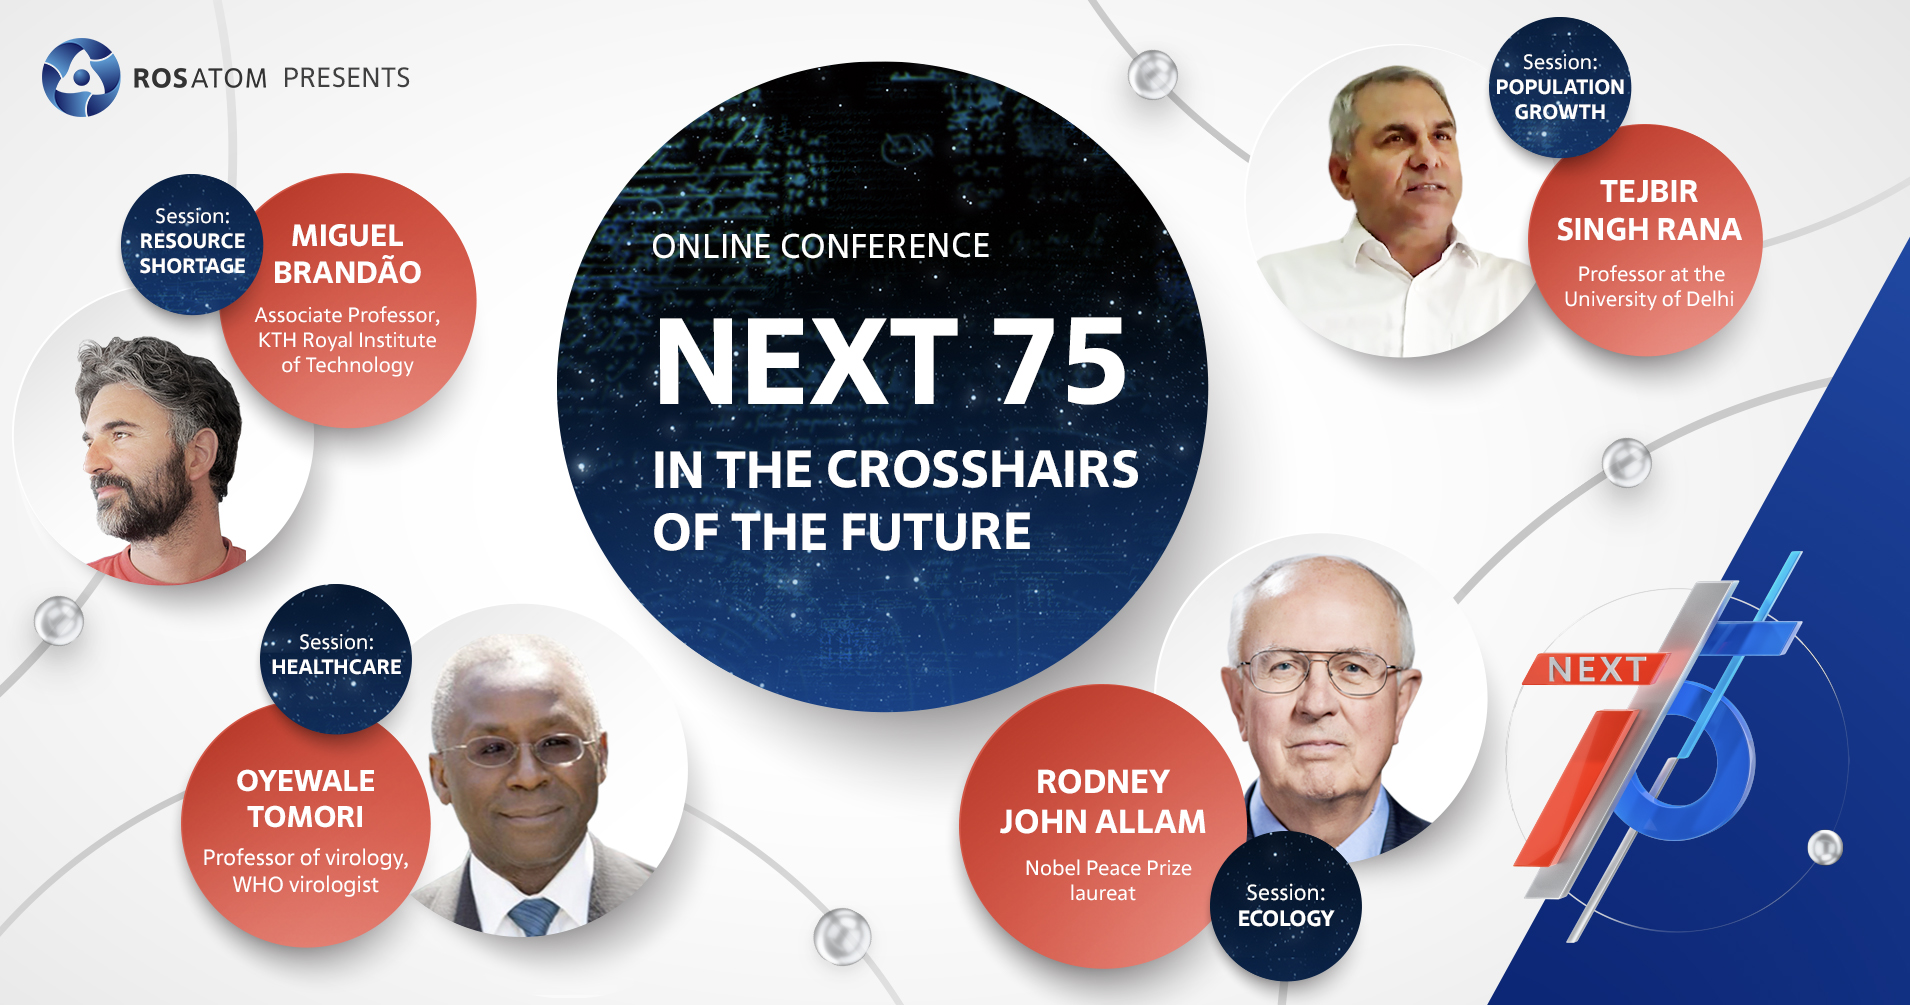 NEXT 75 Conference searches for answers to the challenges of the future